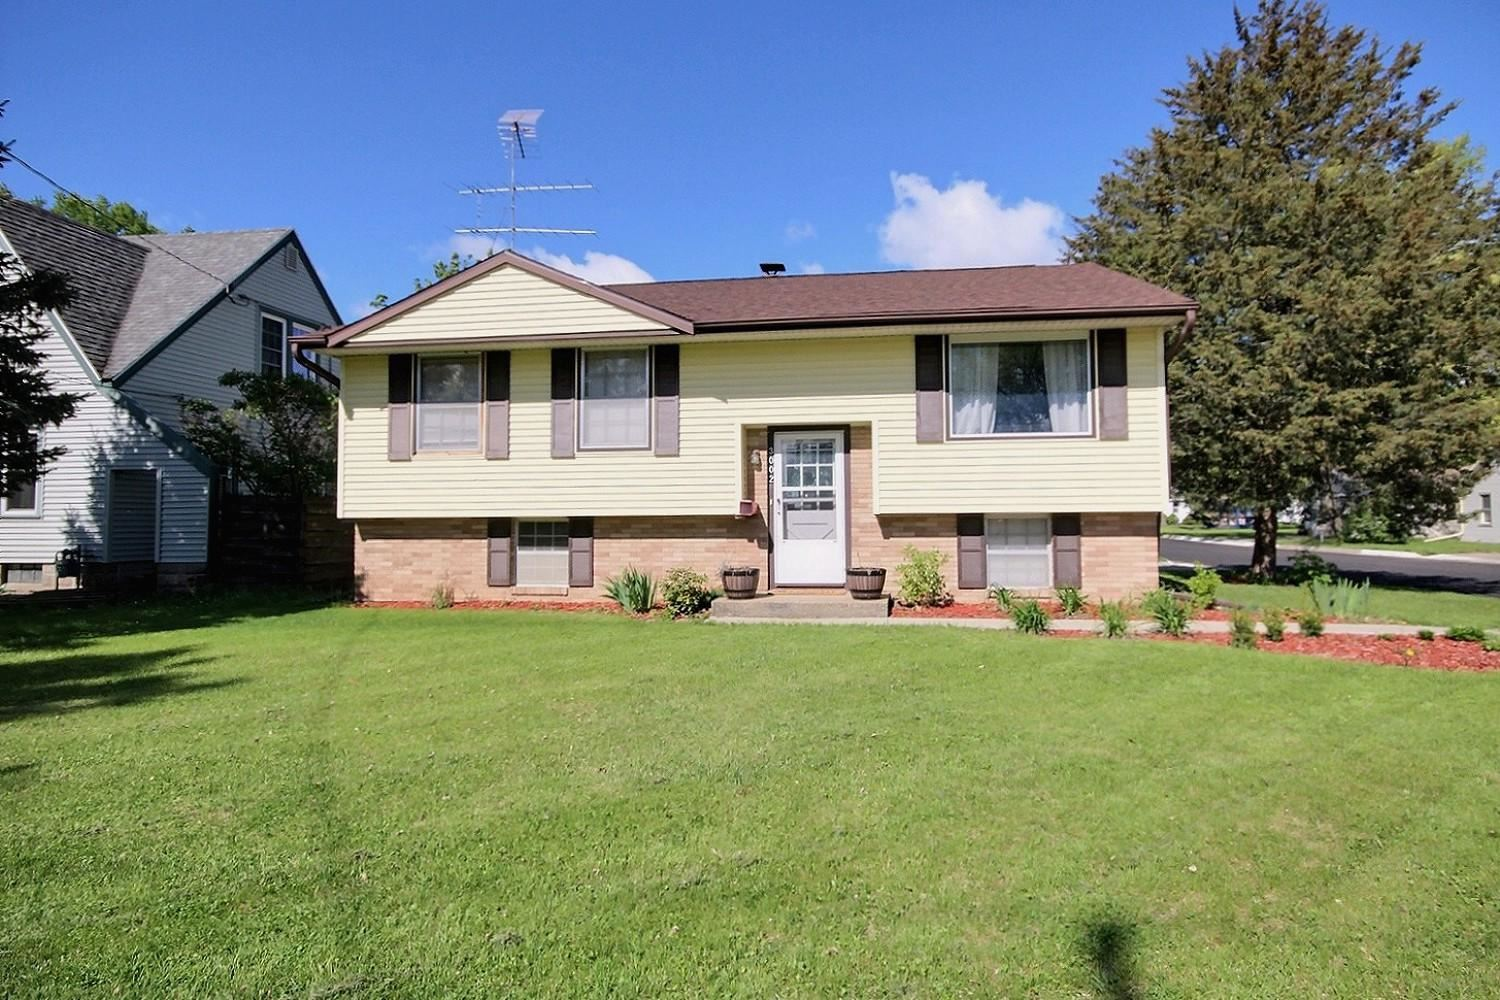 3002 Losey Blvd S, La Crosse, WI 54601 - MLS#: 1739254